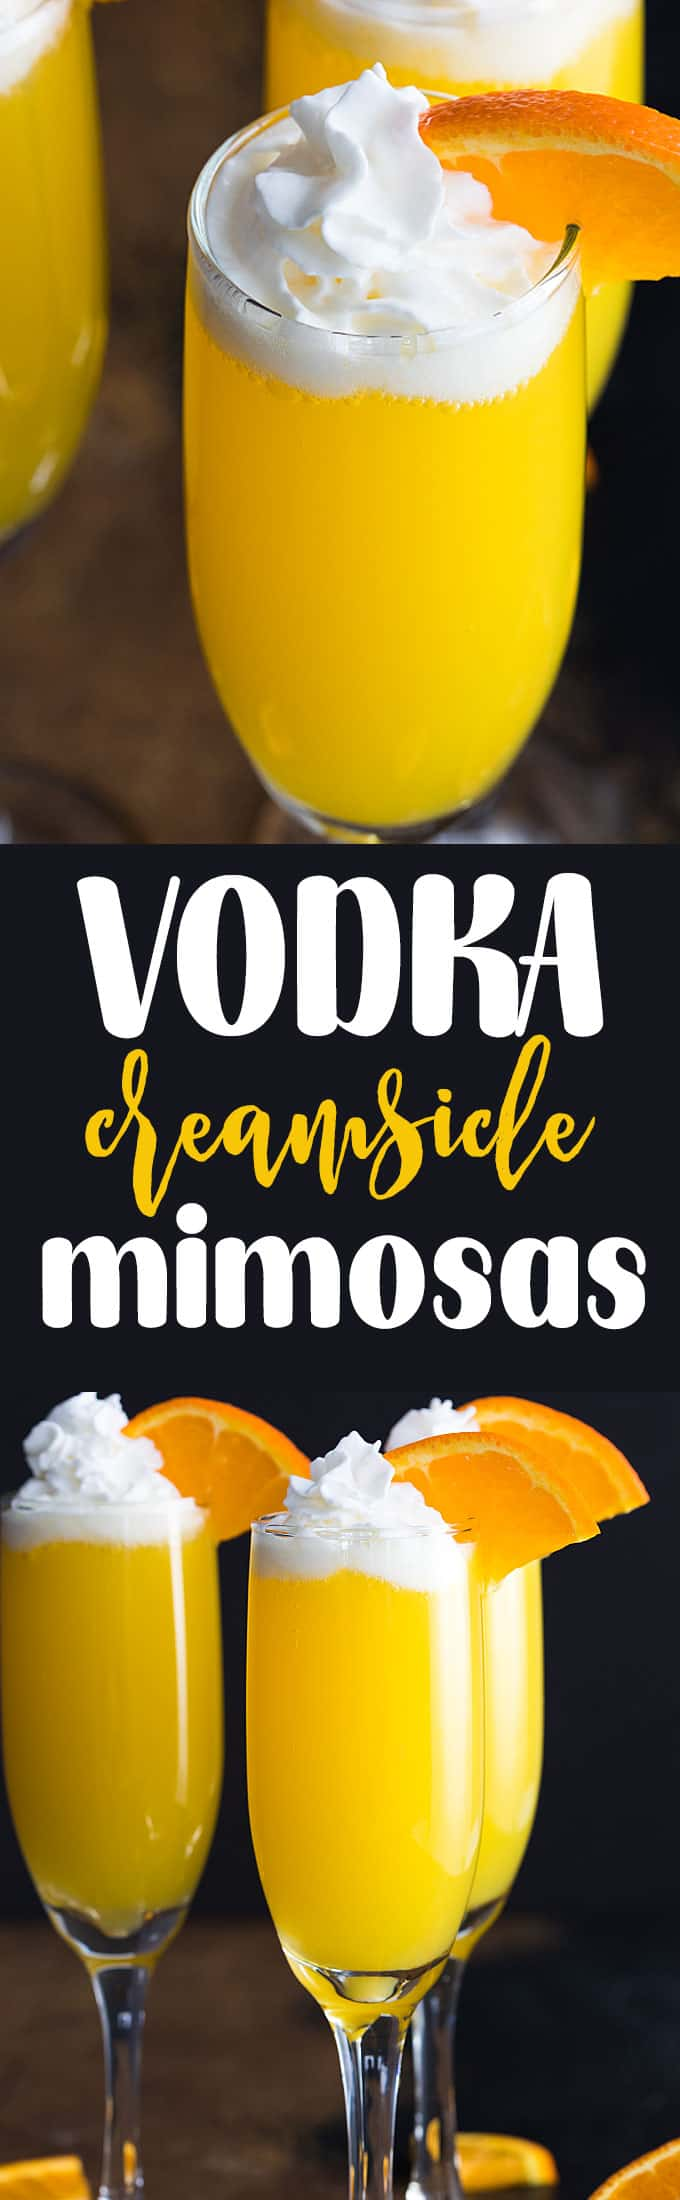 A two image vertical collage of vodka creamsicle mimosas with overlay text in the center.